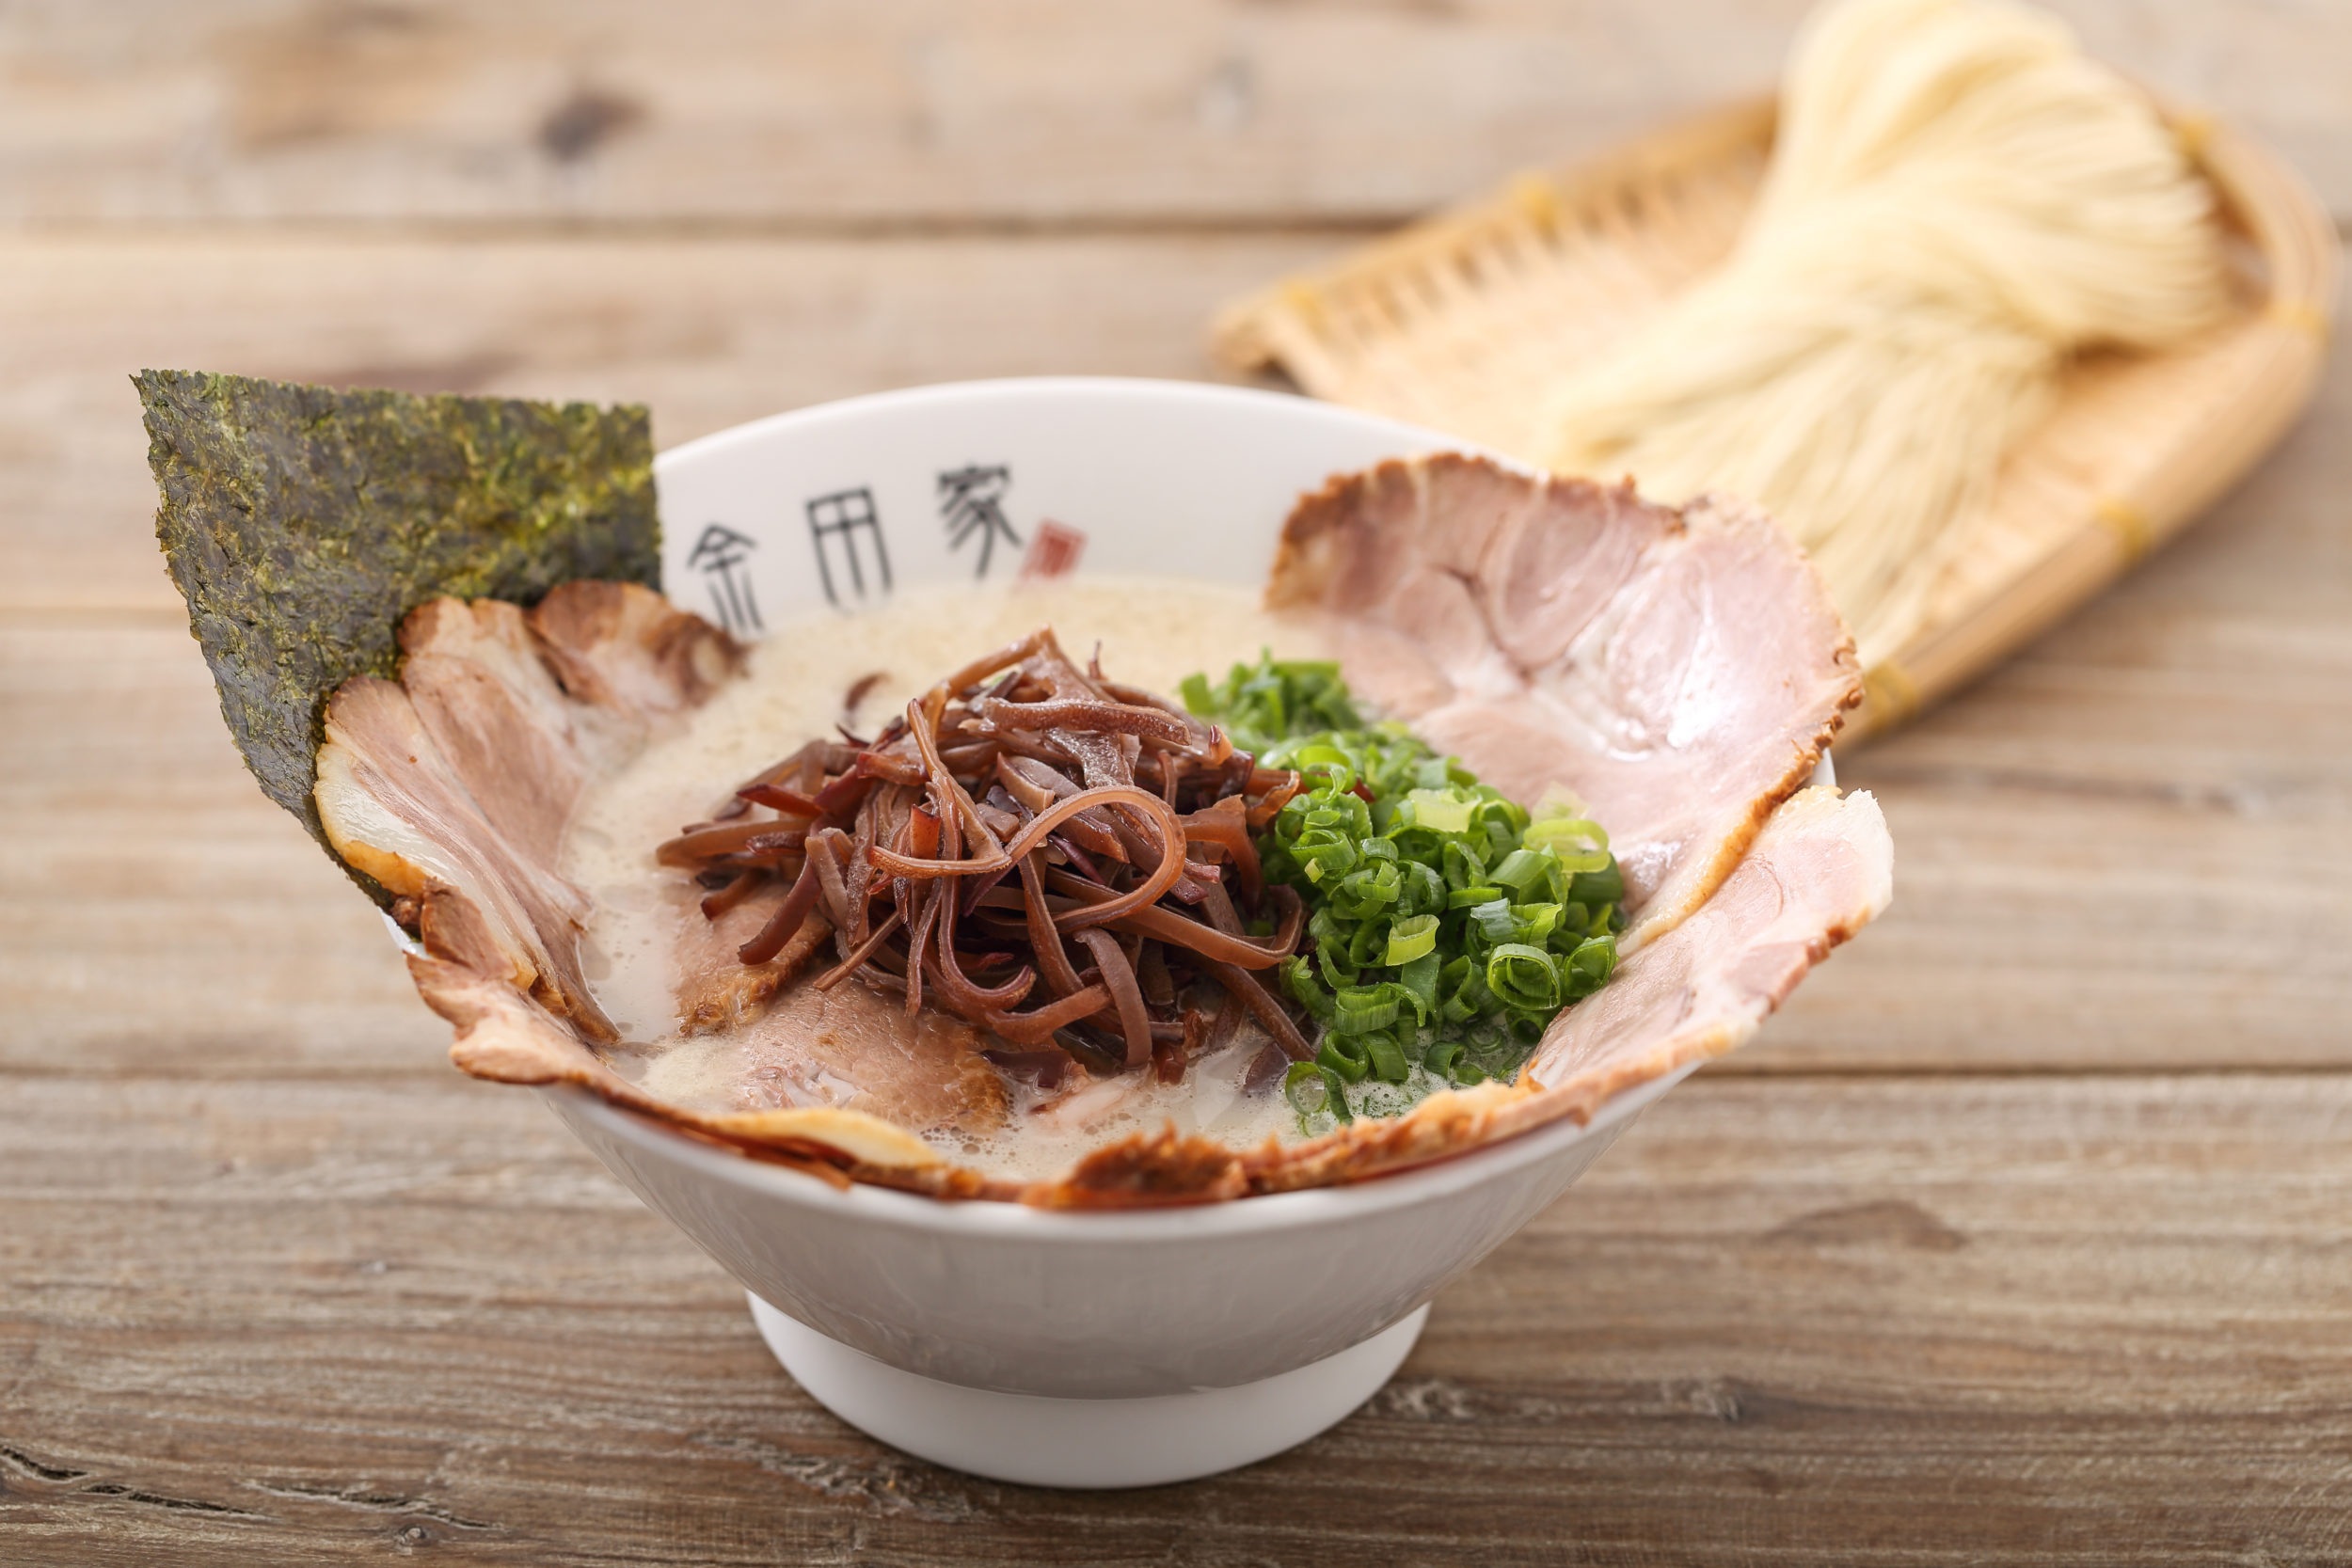 The best Japanese ramen meal kits in KL for this monsoon season